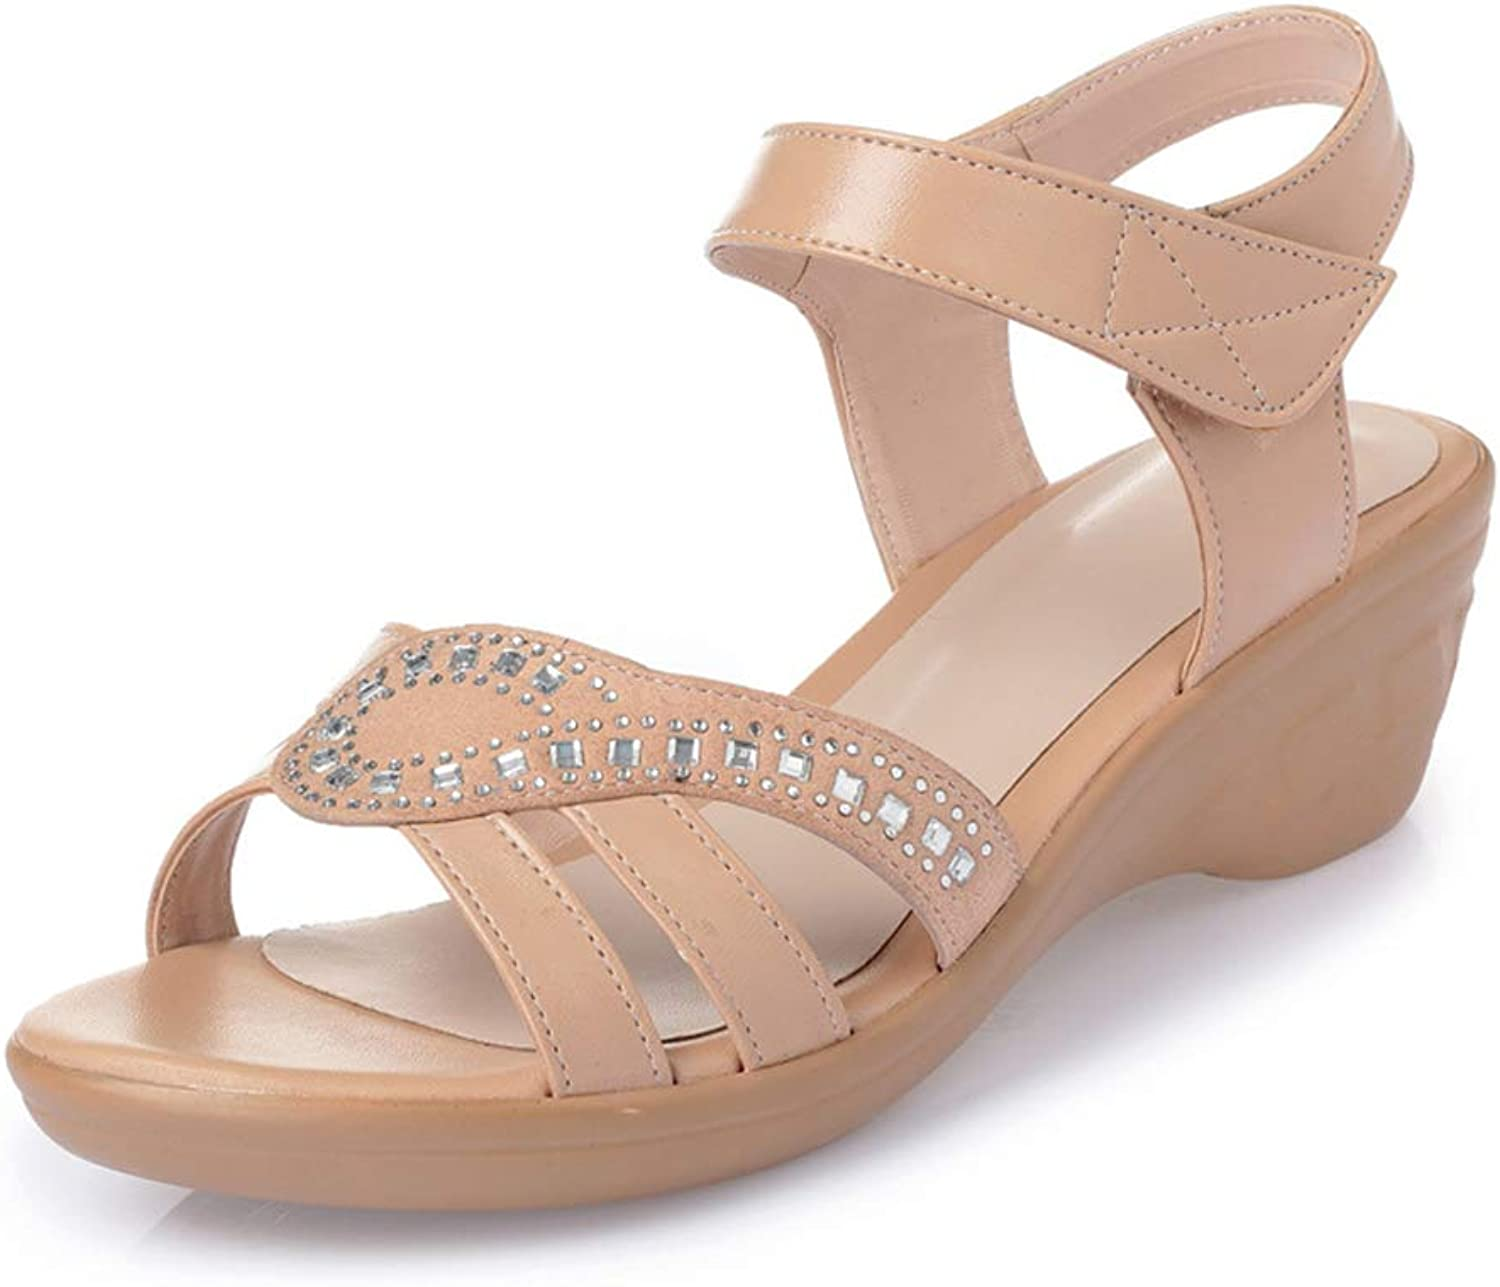 F1rst Rate Women's Summer Fashion Design Ankle Low Wedges Sandals